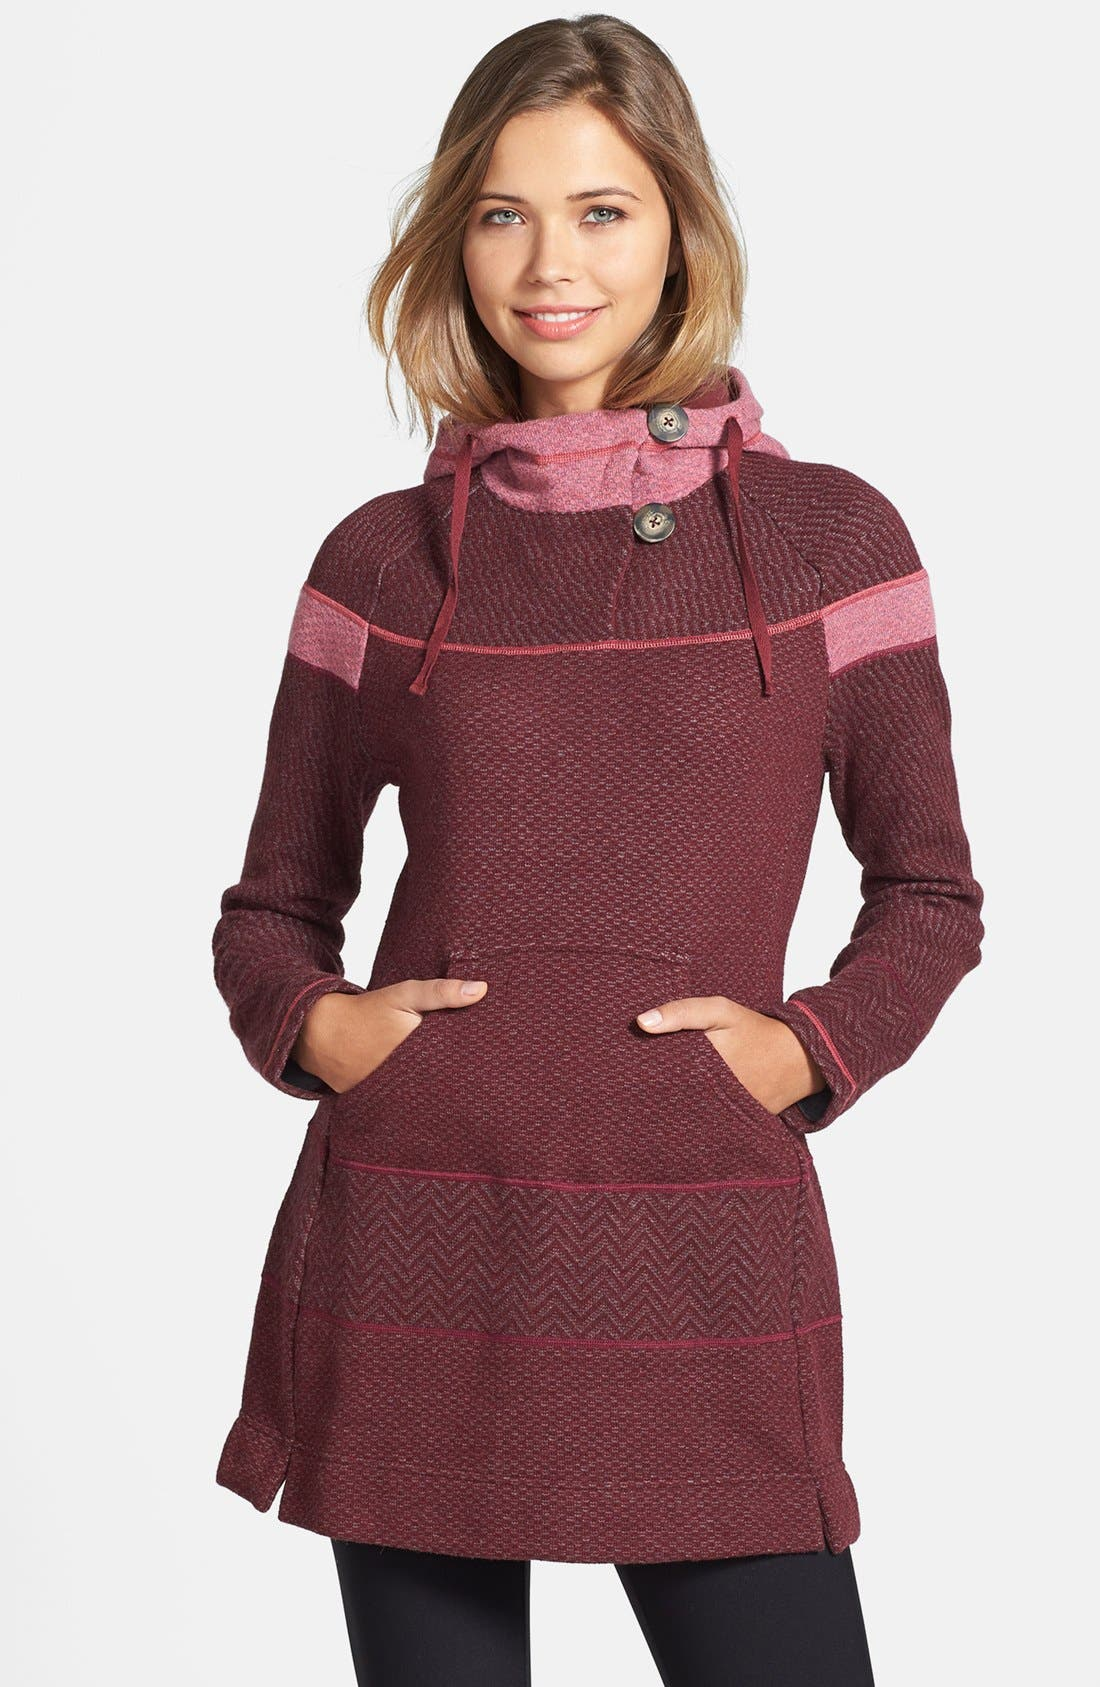 Alternate Image 1 Selected - prAna 'Caitlyn' Sweater